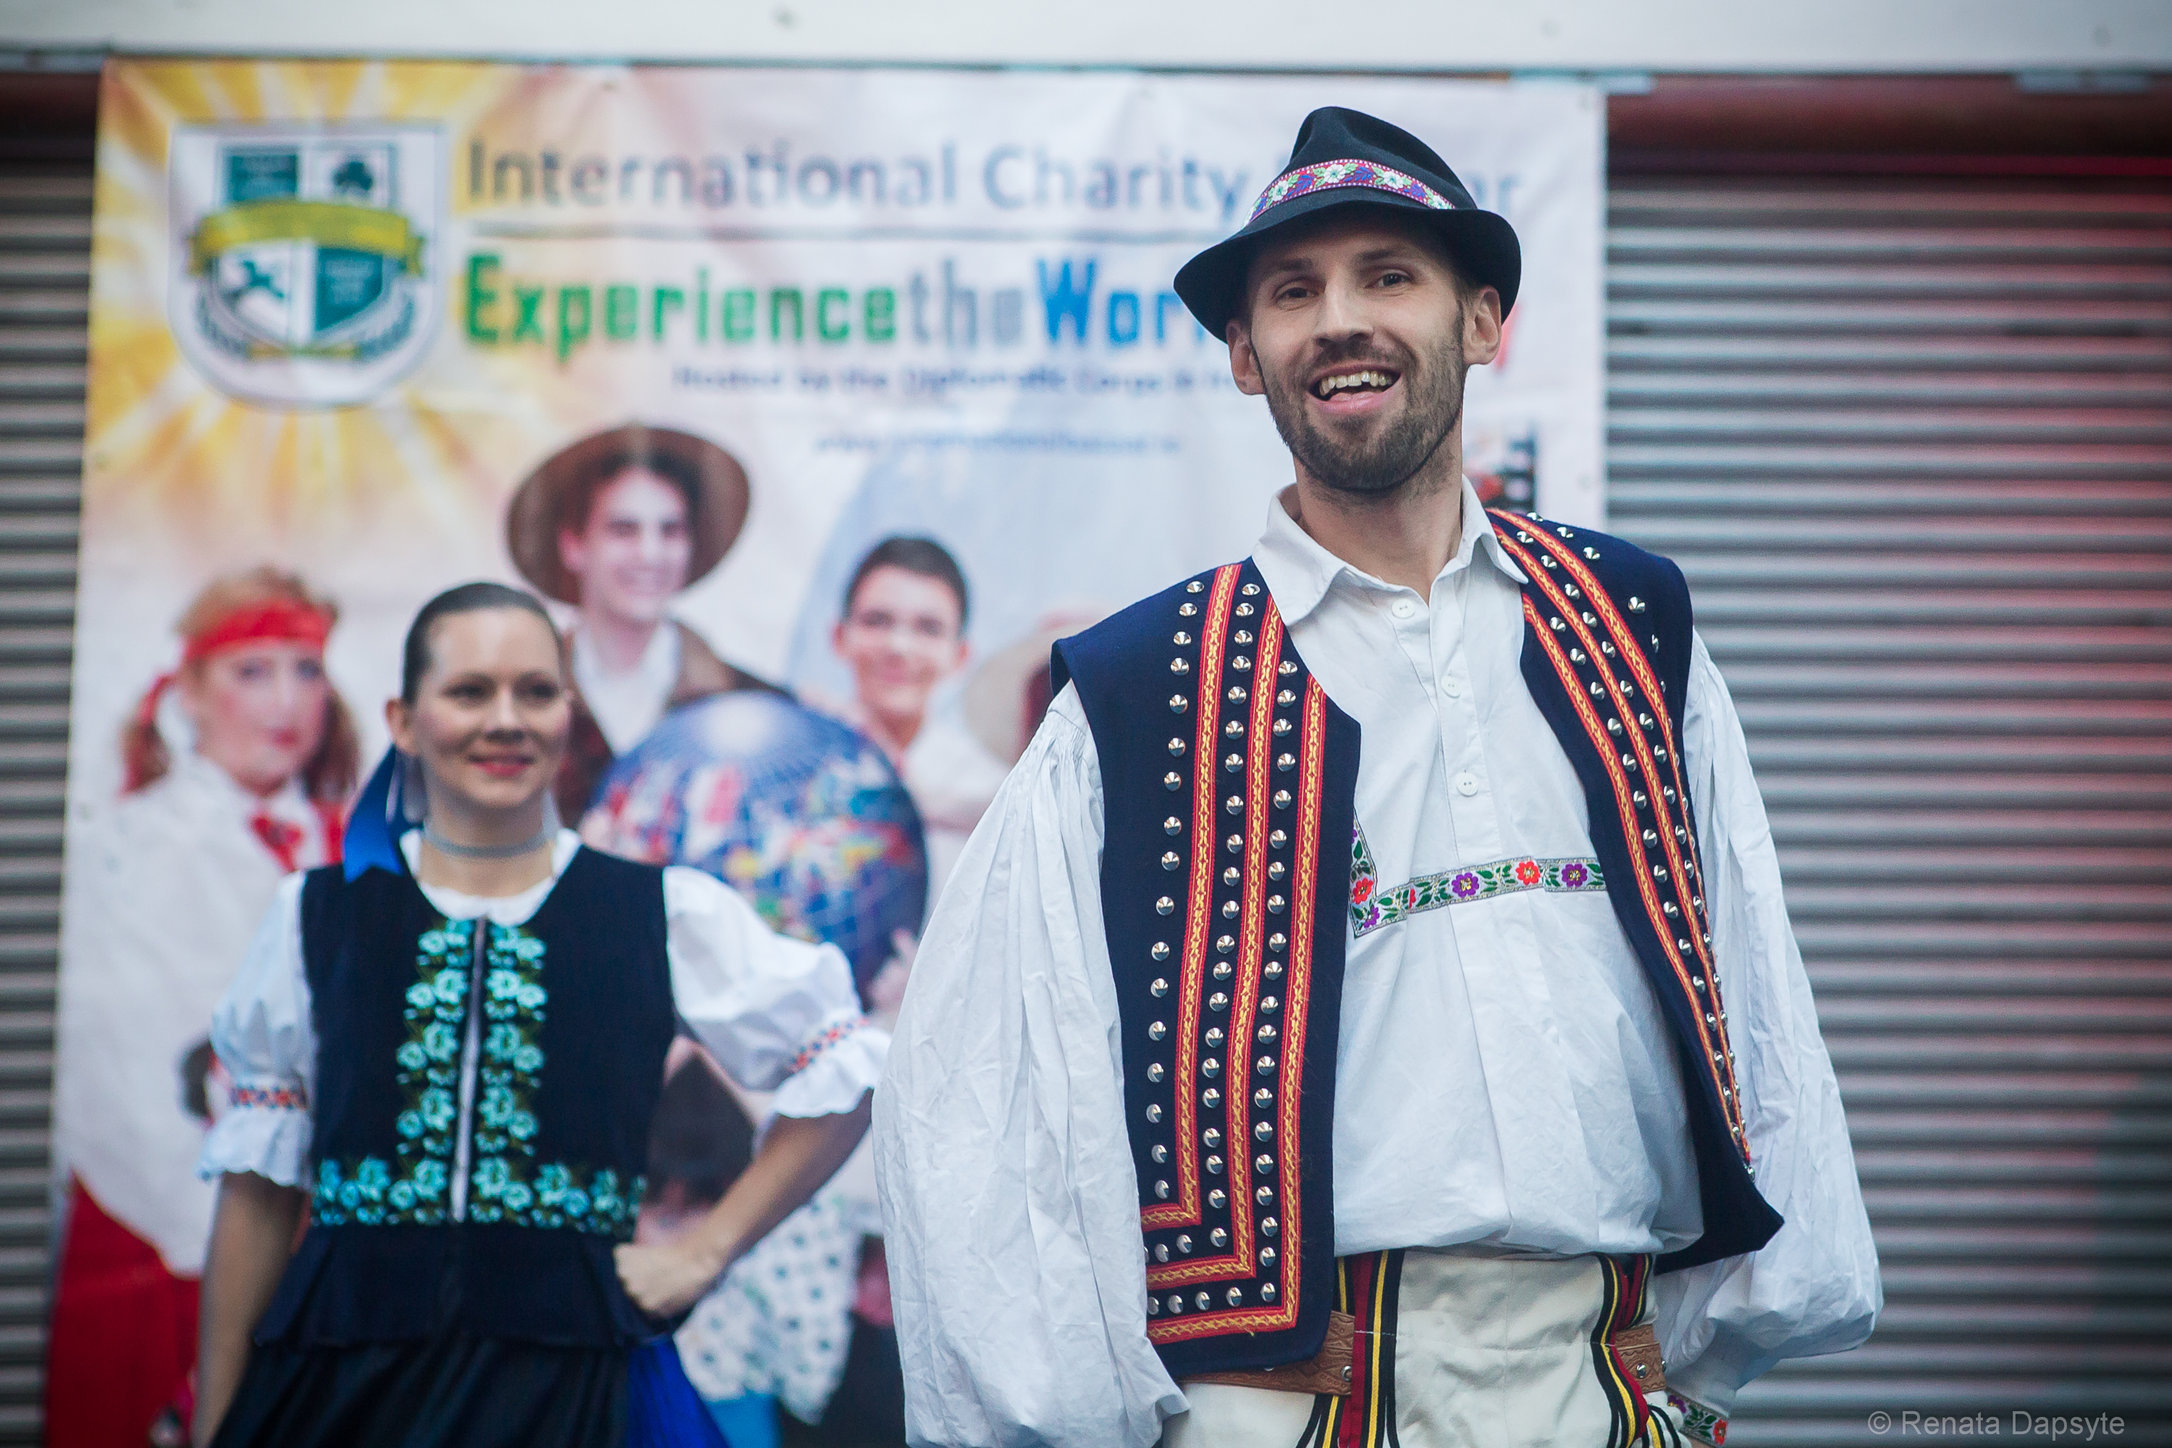 037_International Charity Bazaar Dublin 2013.JPG